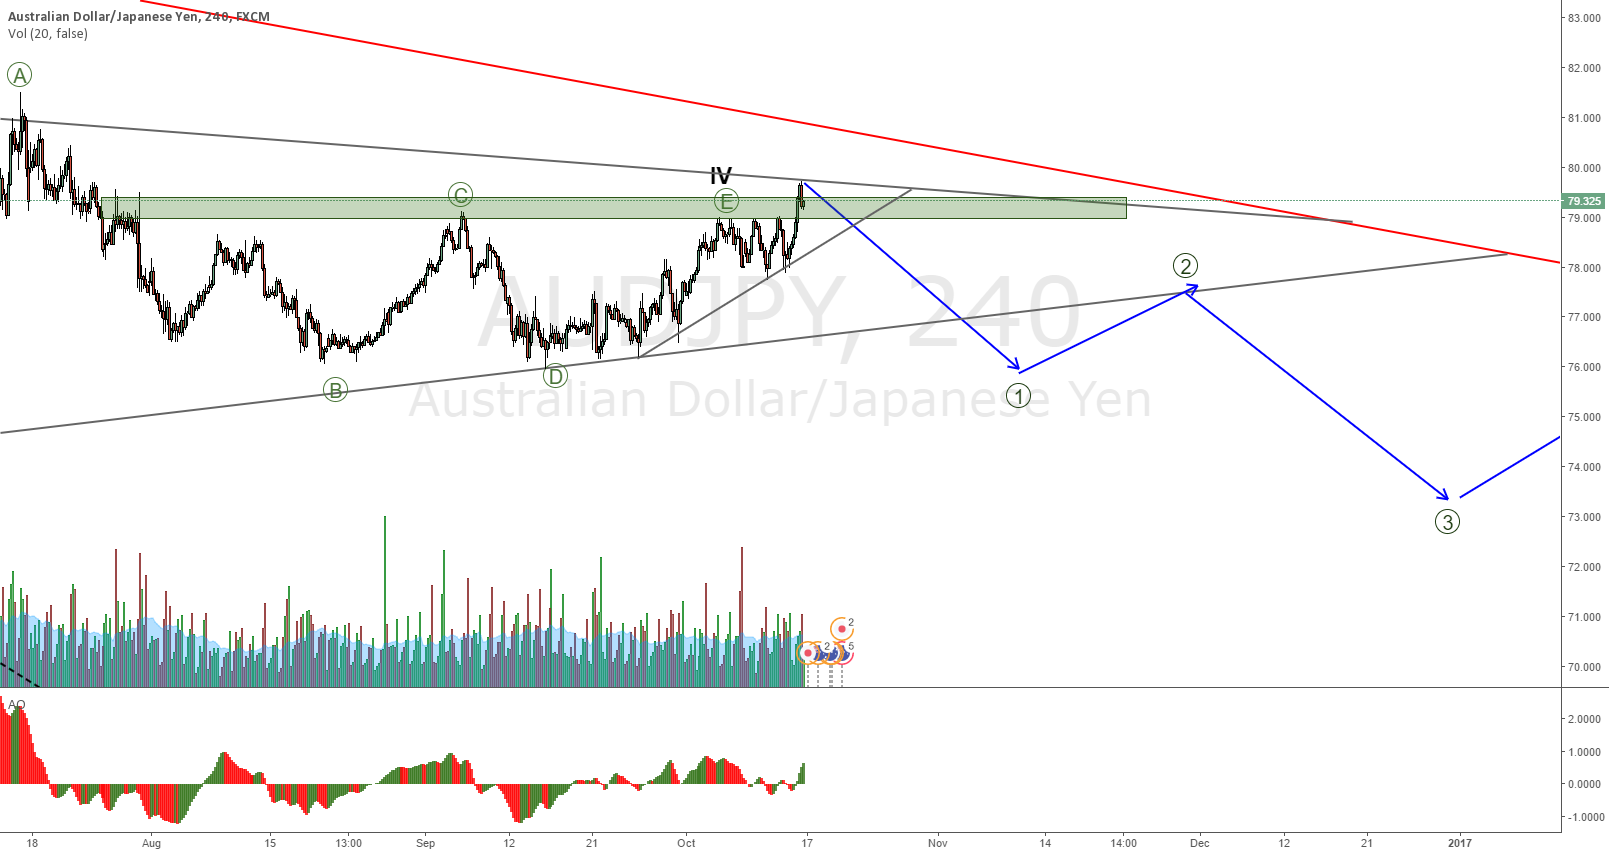 AUDJPY correction bearish view